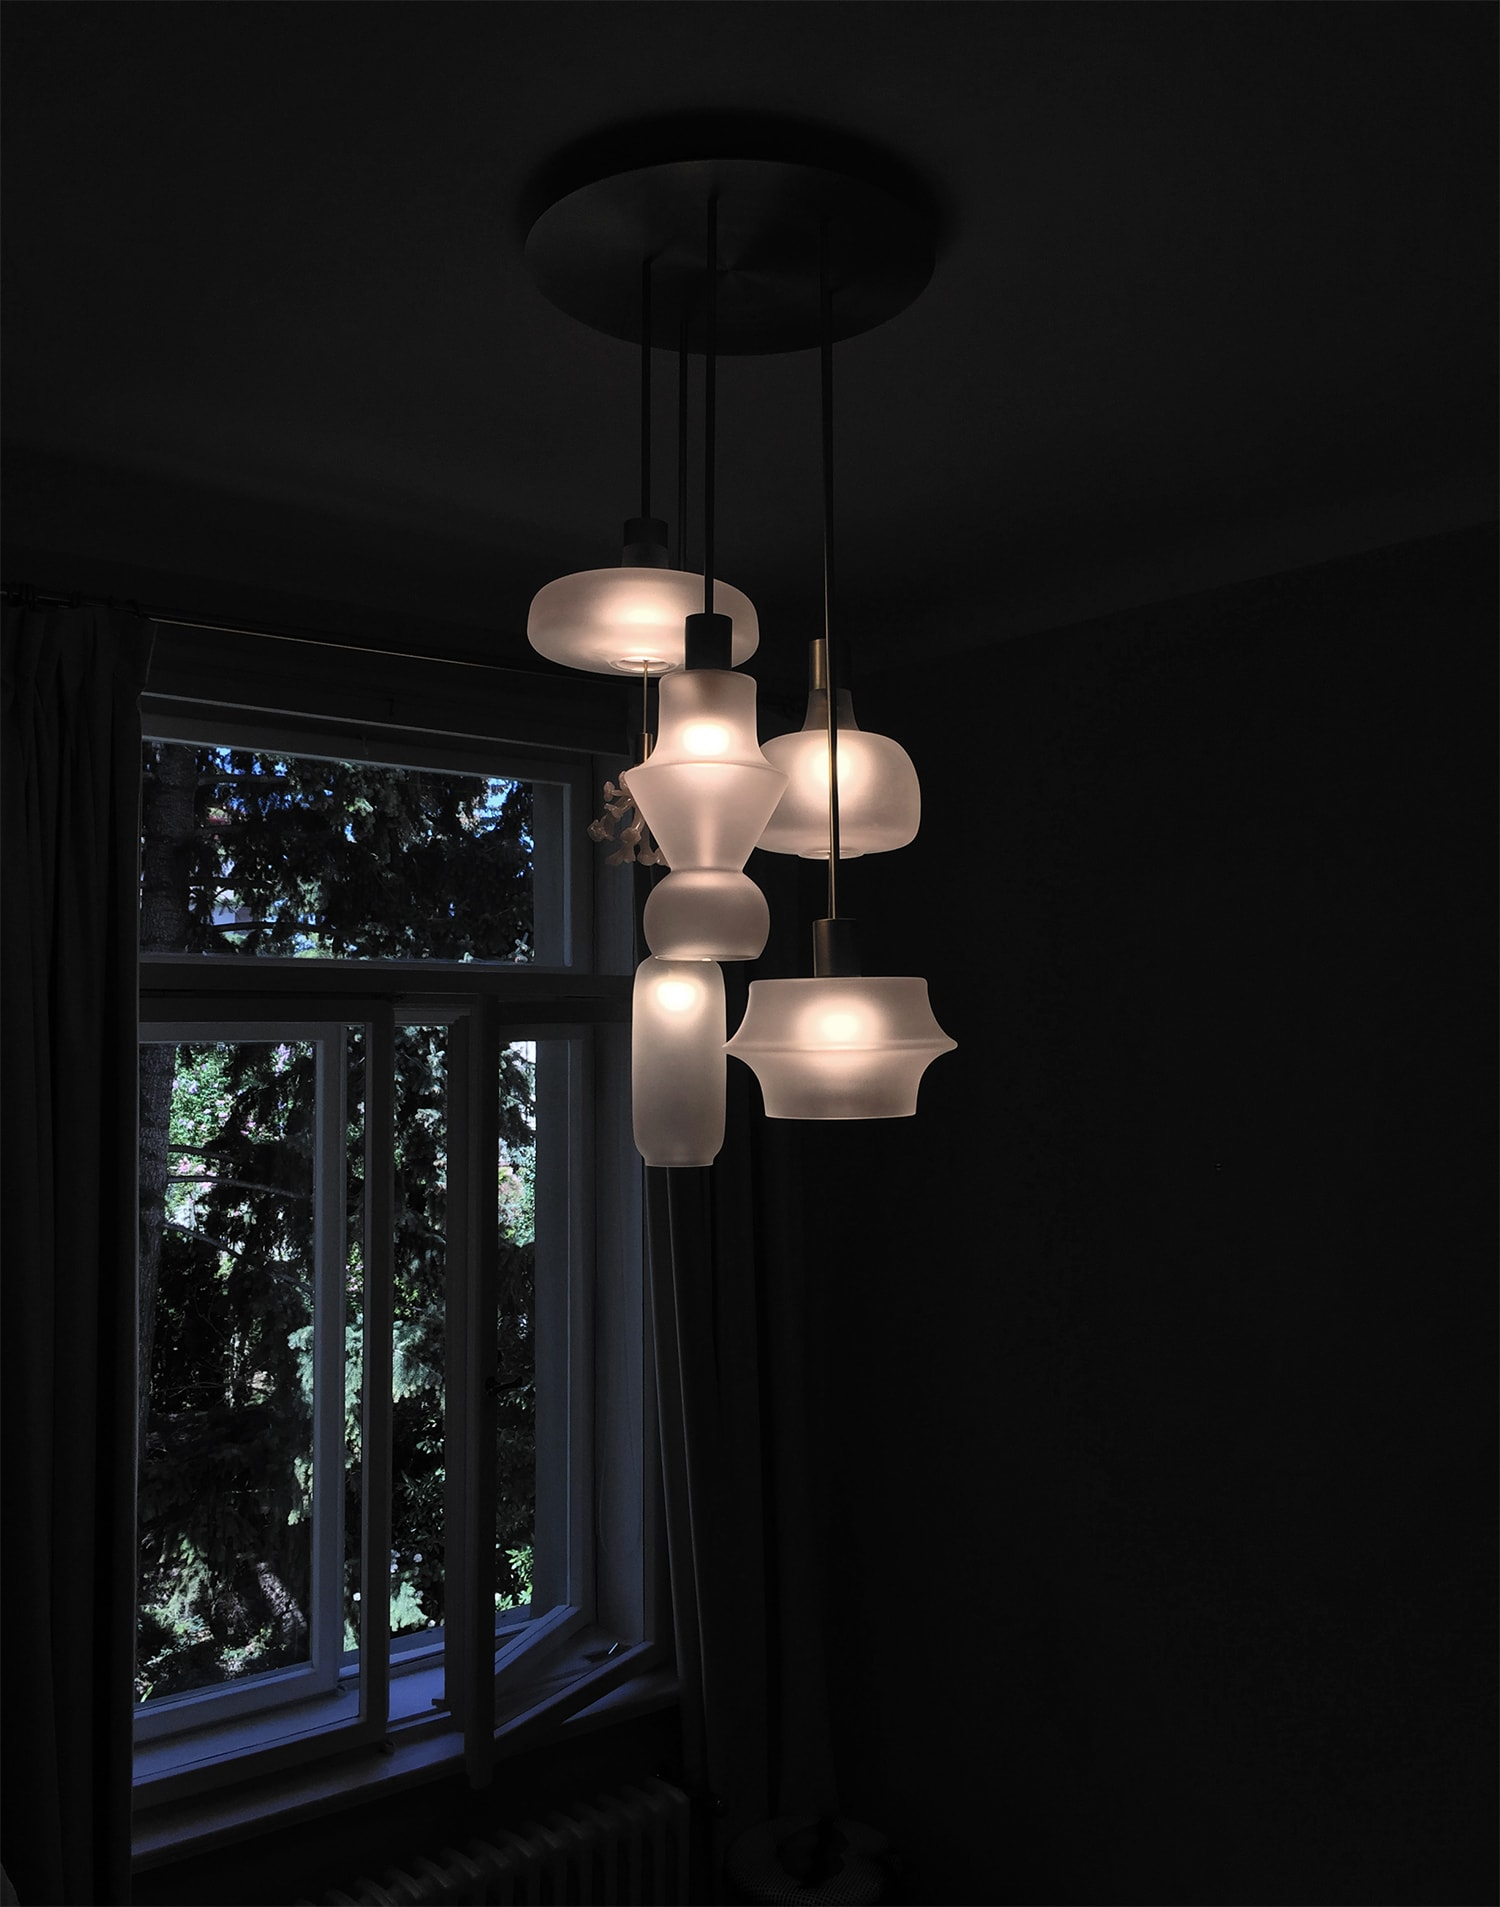 helena lighting object chandelier site specific residence prague jiri krejcirik rony plesl studio 4